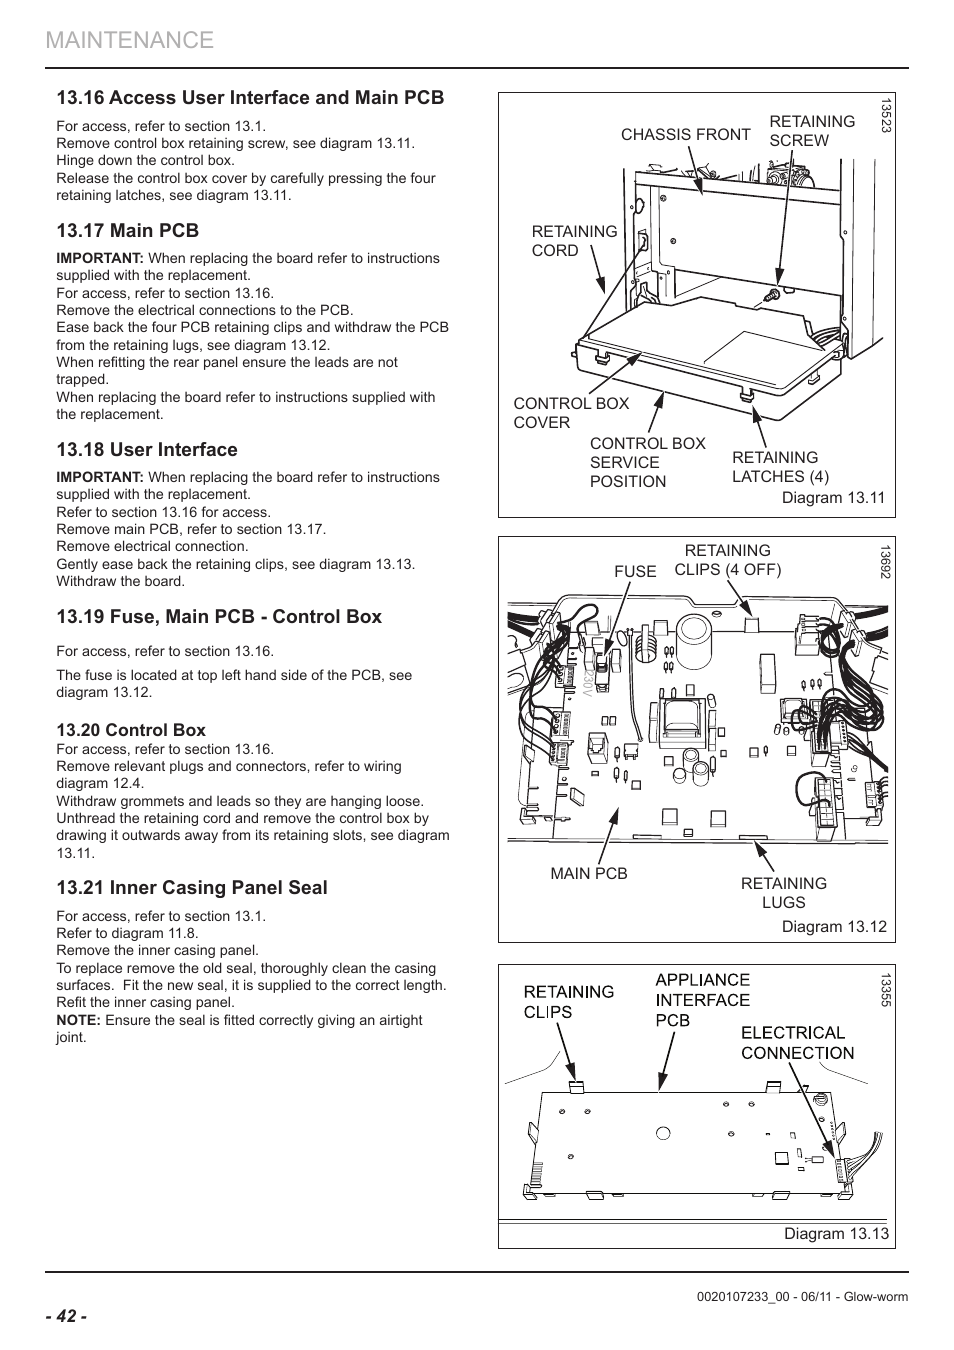 Maintenance 16 Access User Interface And Main Pcb 17 Wiring Diagram Grommets Clips Glow Worm Ultracom Hxi Manual Page 42 48